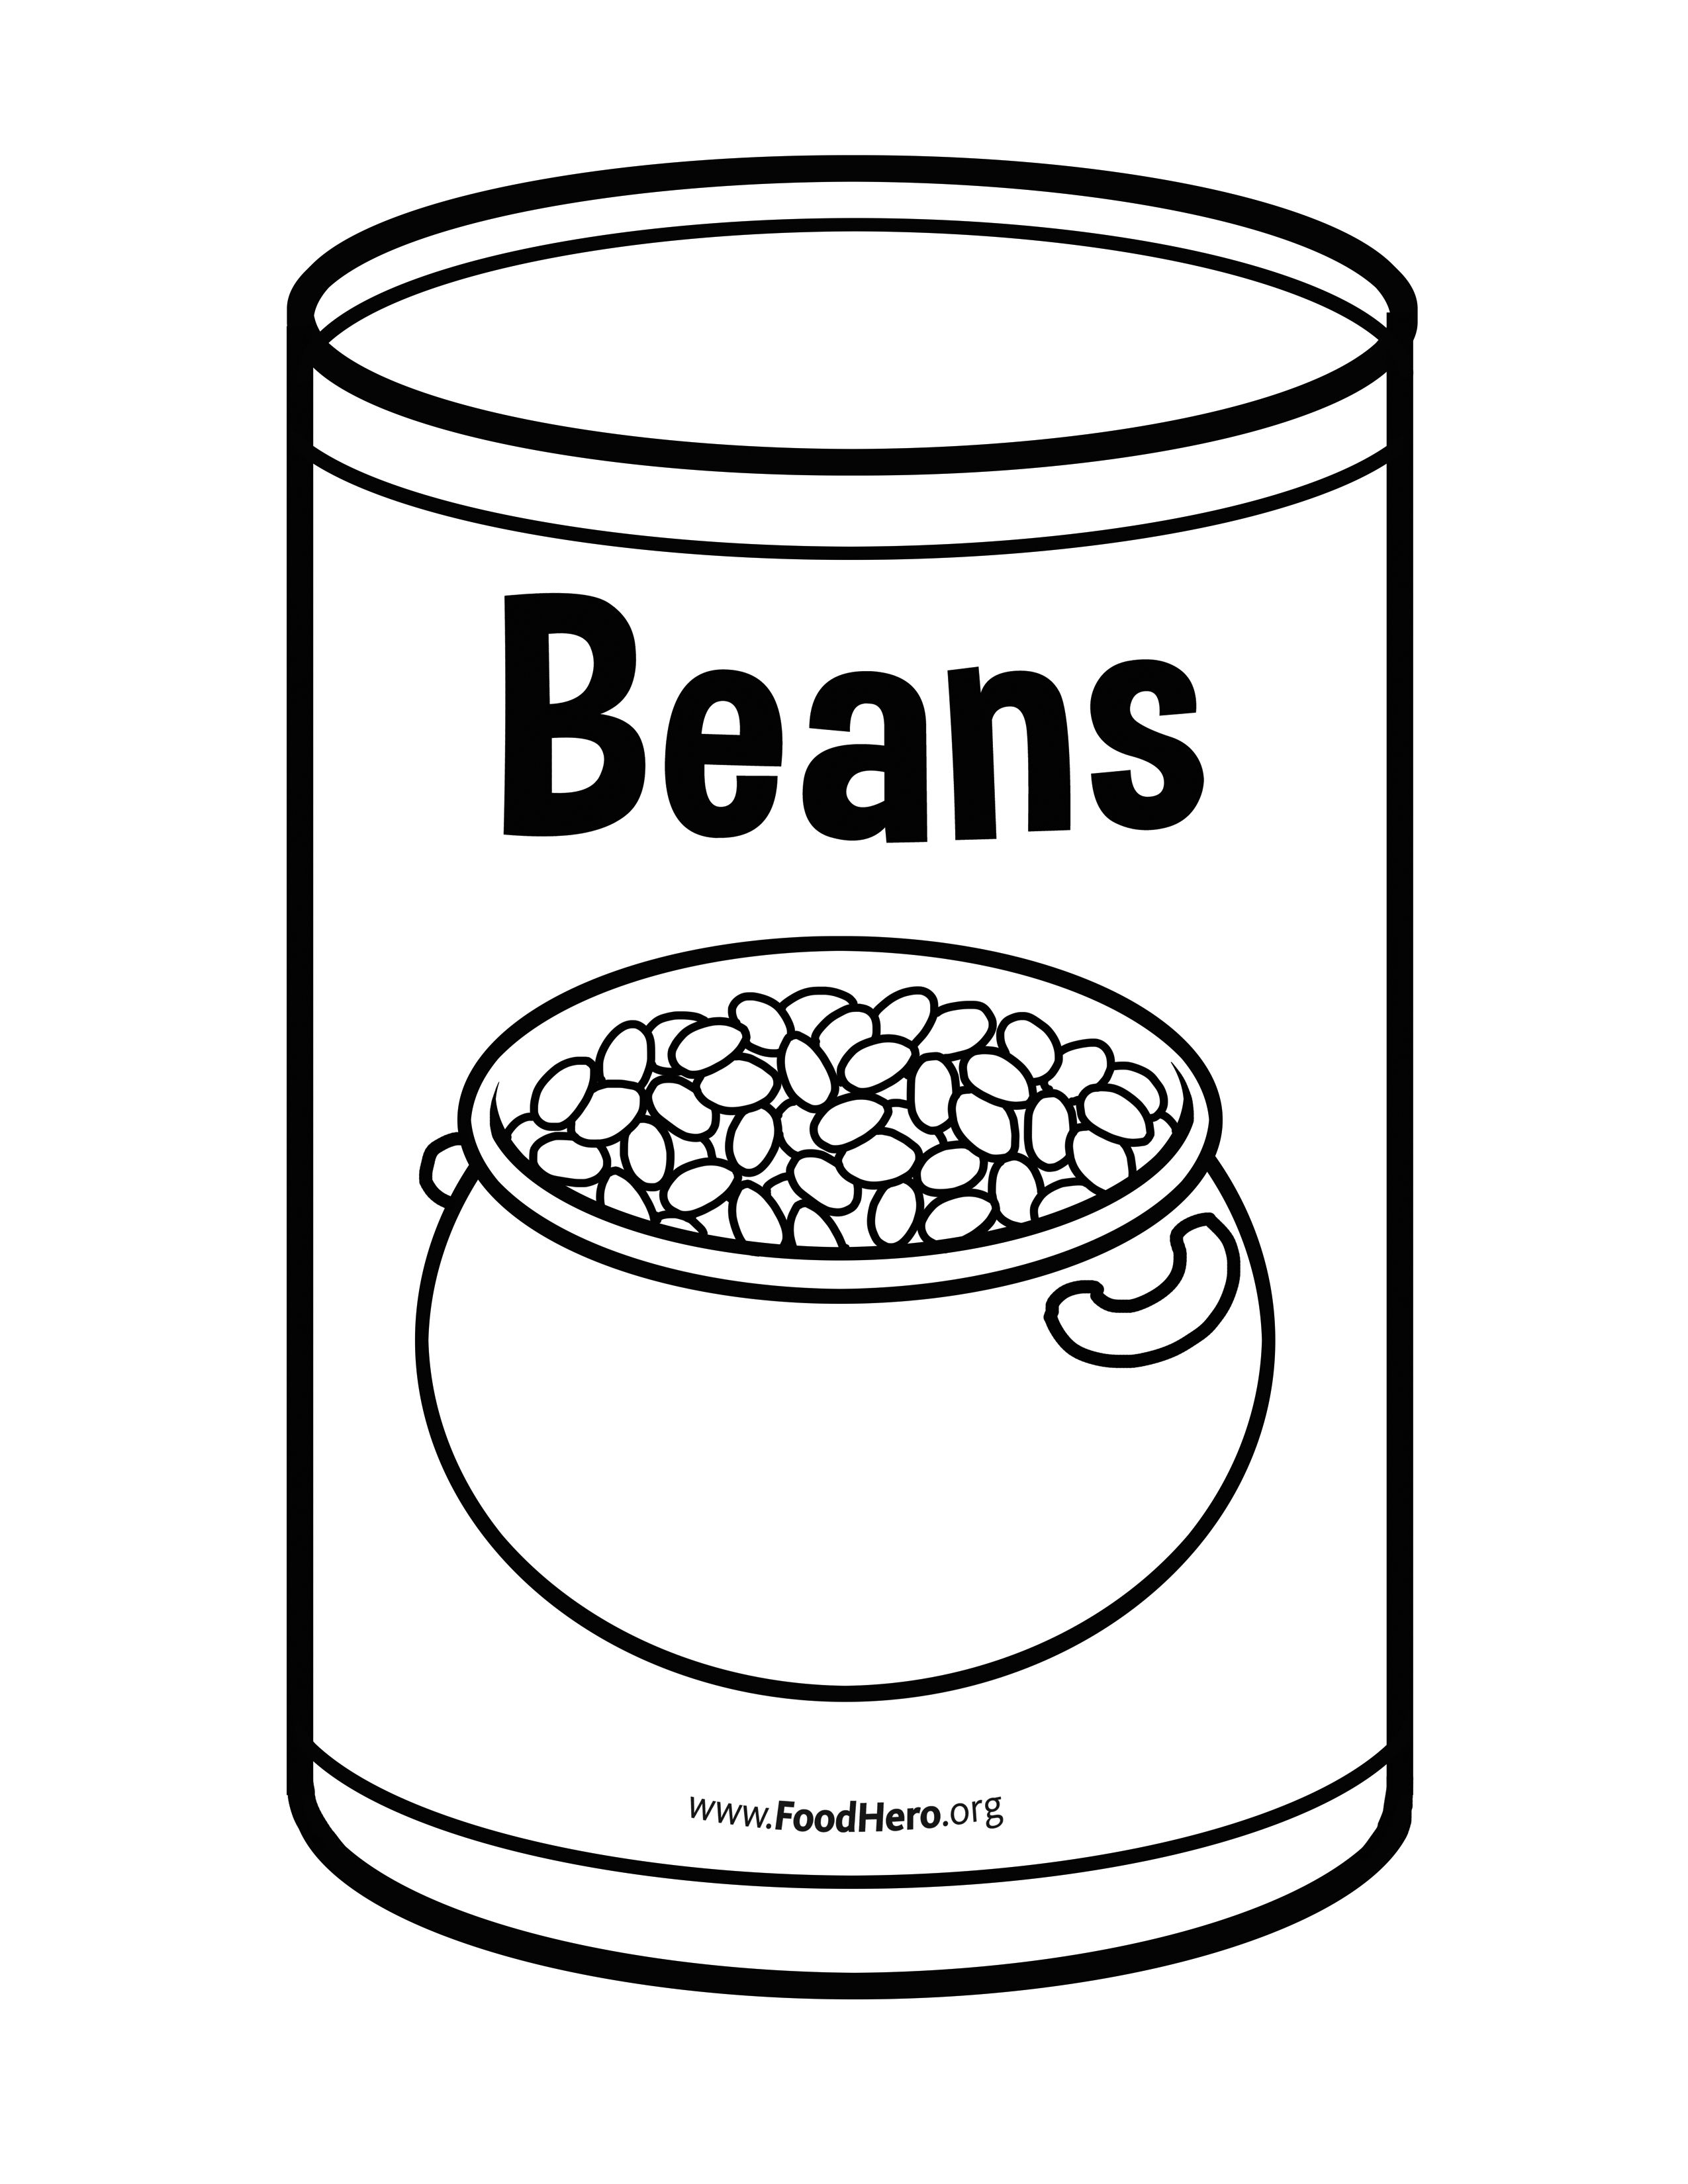 10+ Protein Clipart Black And White